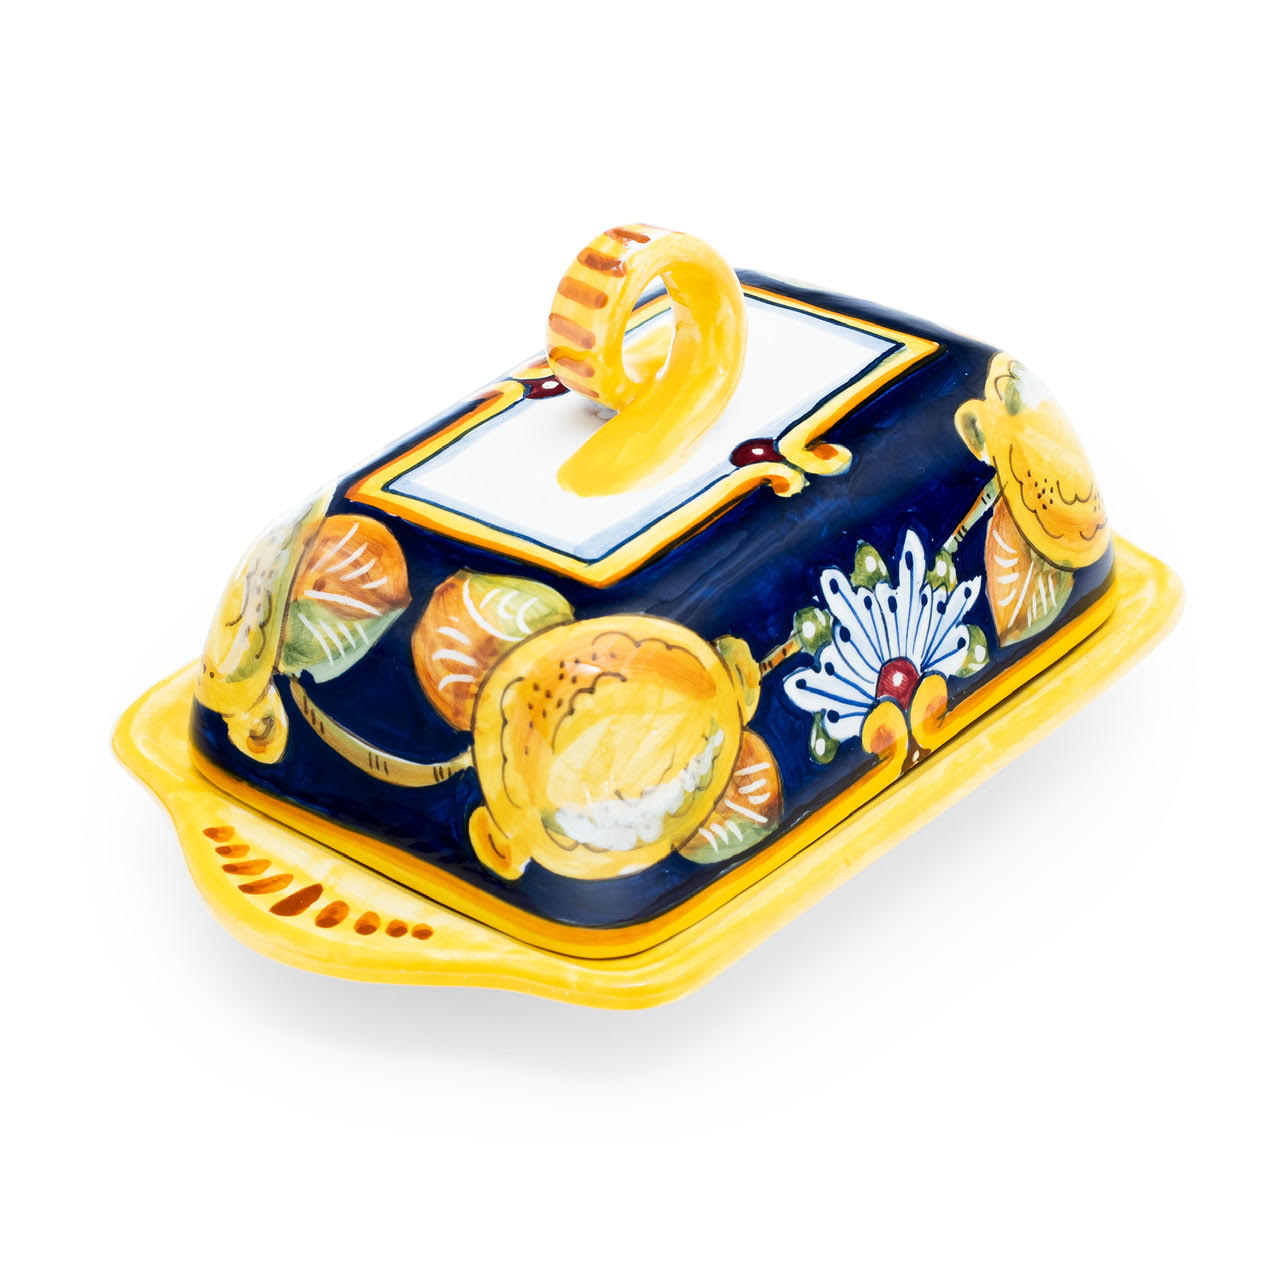 Lemon Design Butter Dish